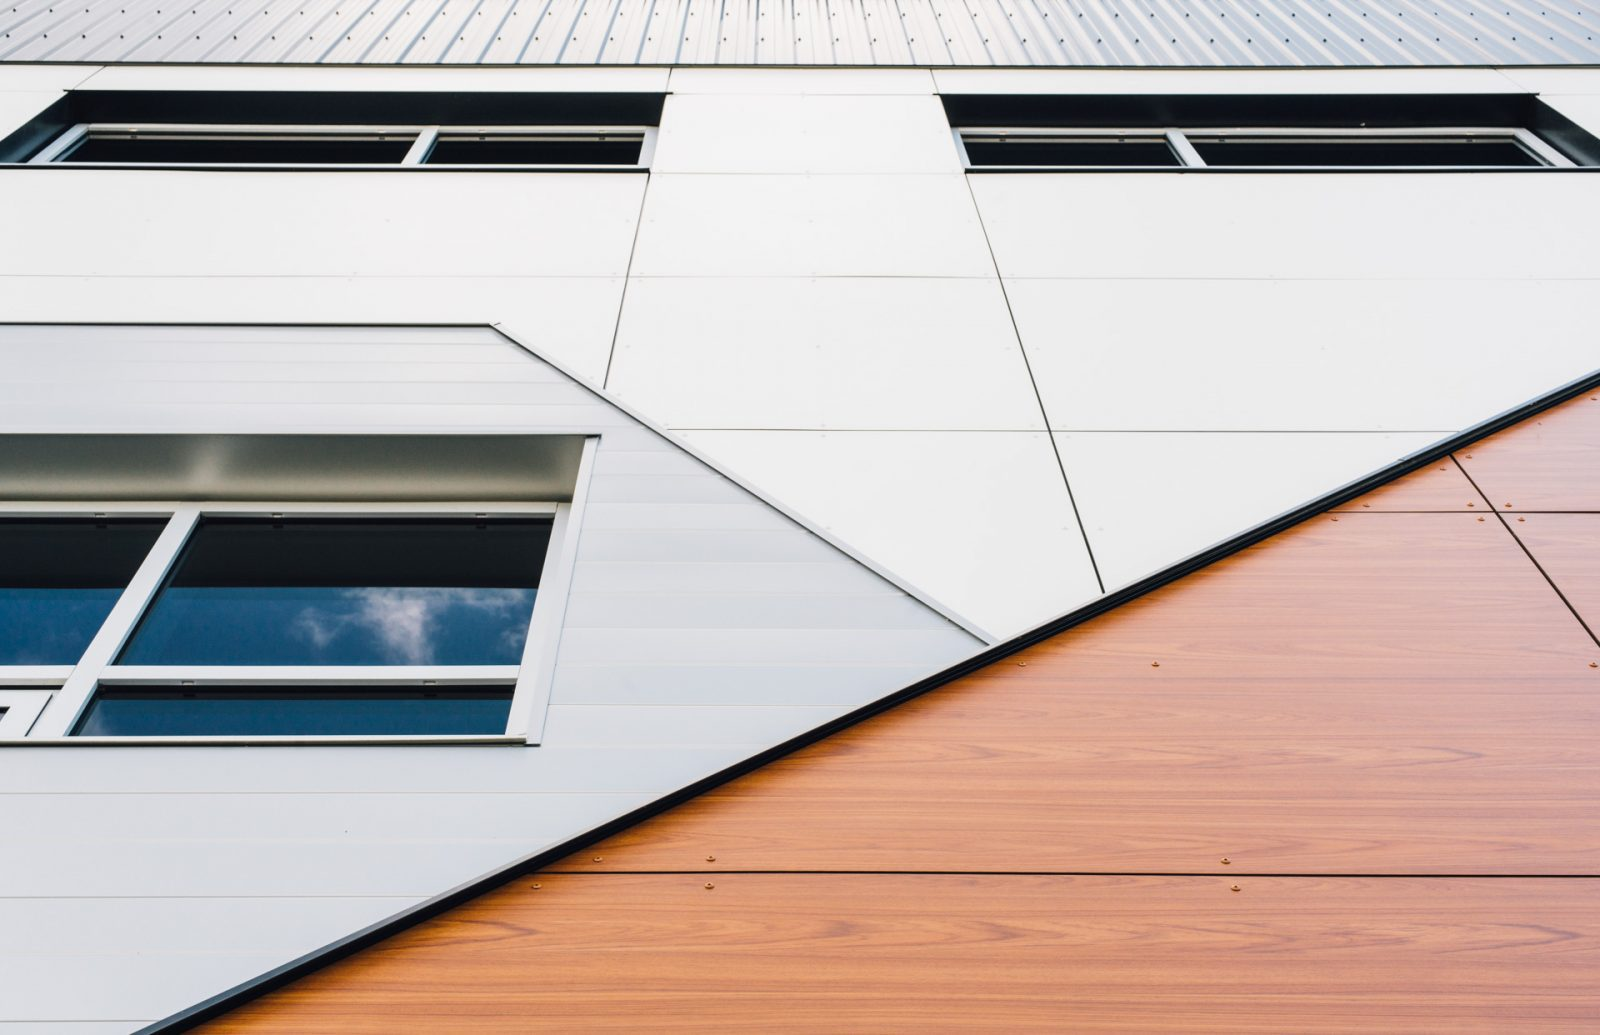 Wood Composite / Phenolic Resin Panel with metal cladding